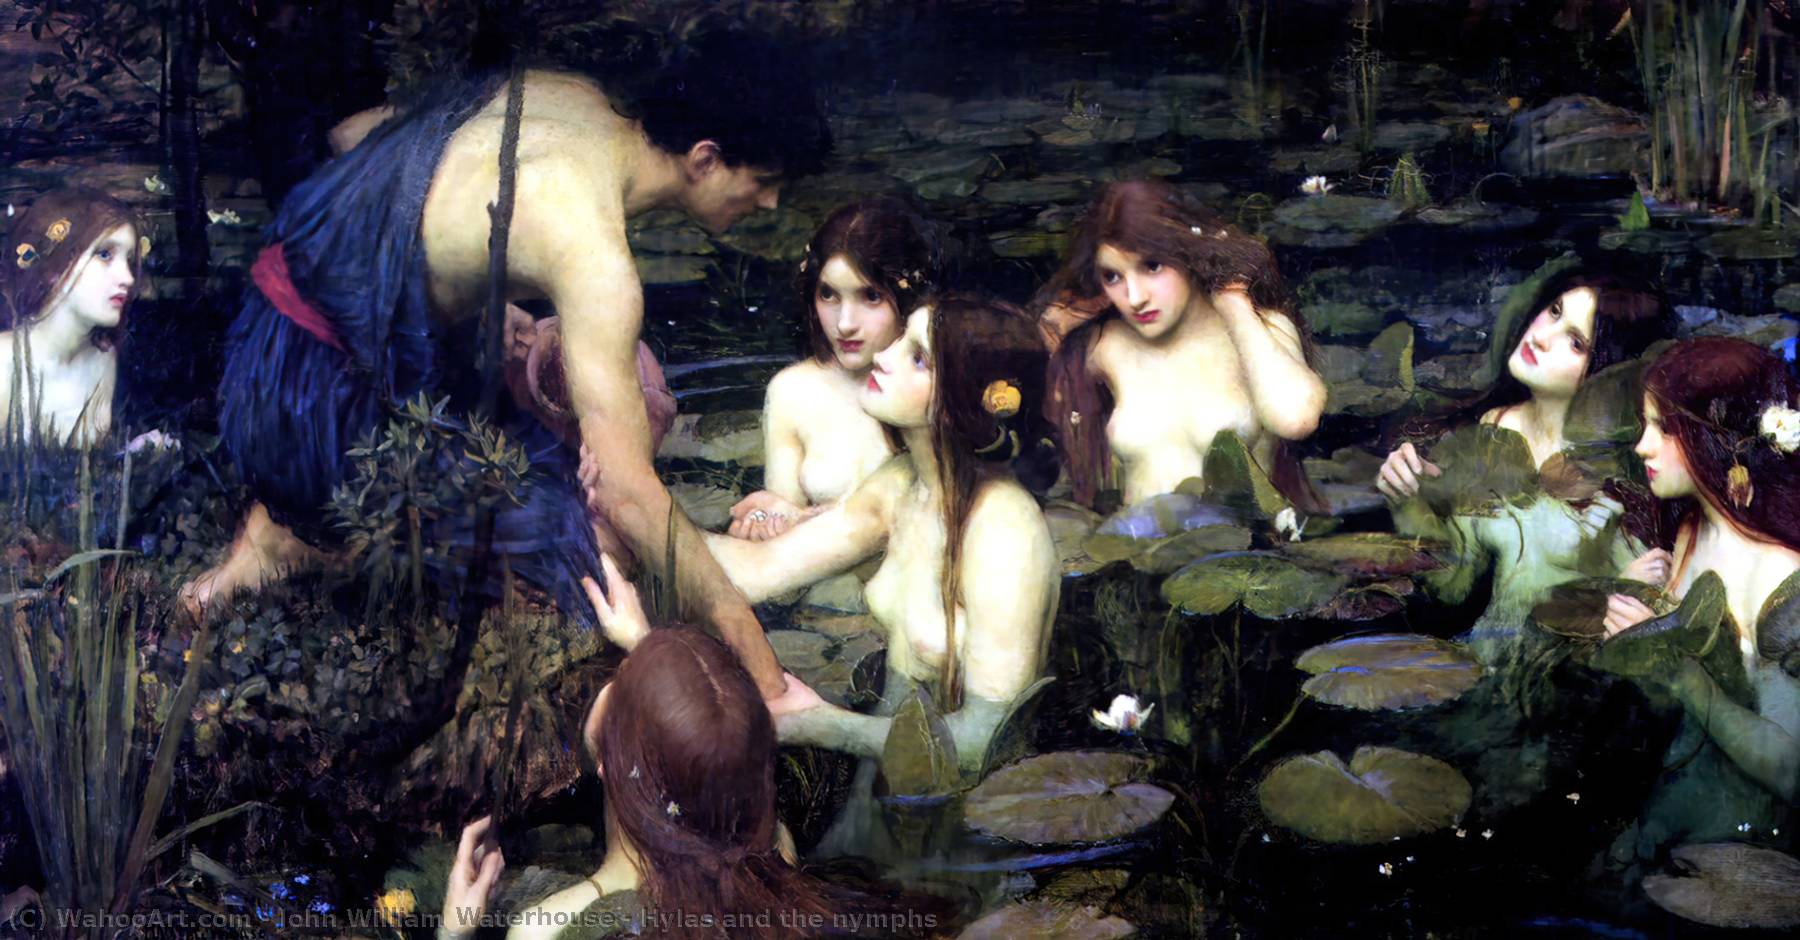 Compre Museu De Reproduções De Arte | Hylas e as ninfas por John William Waterhouse | Most-Famous-Paintings.com